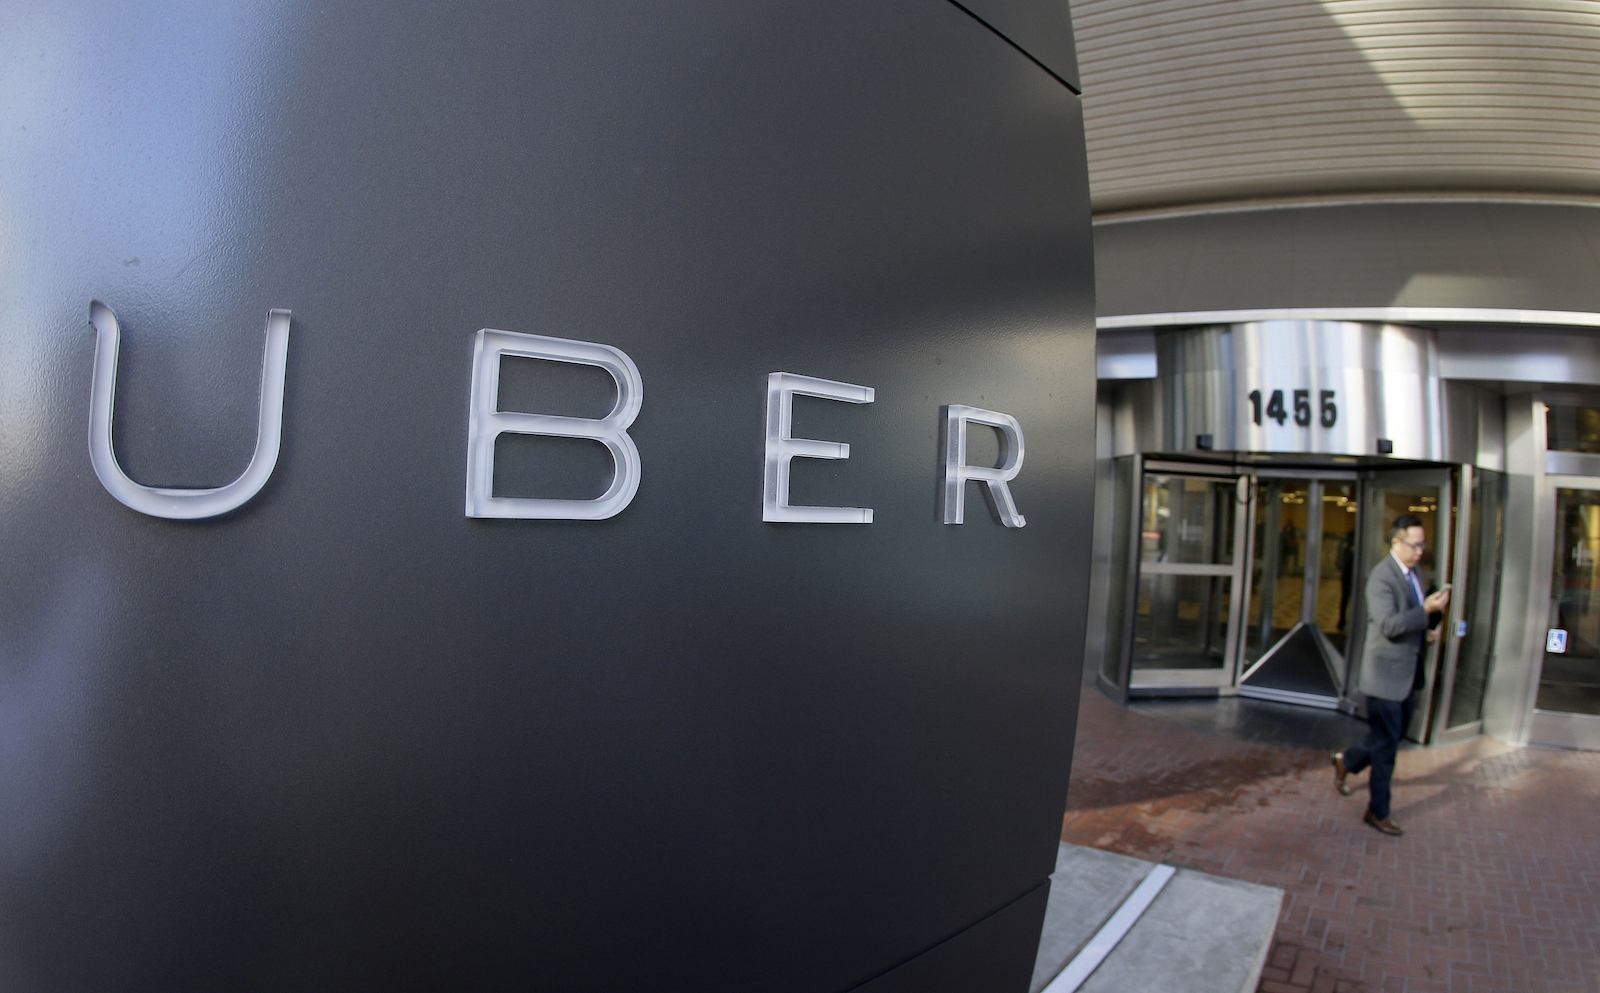 FILE - In this Dec. 16, 2015, file photo, a man leaves the headquarters of Uber in San Francisco. The killings in Kalamazoo, Michigan, raised anew a question that has dogged Uber and other taxi competitors. Their rides may be cheaper and more conveniently hailed than a cab, but the question is are they as safe.